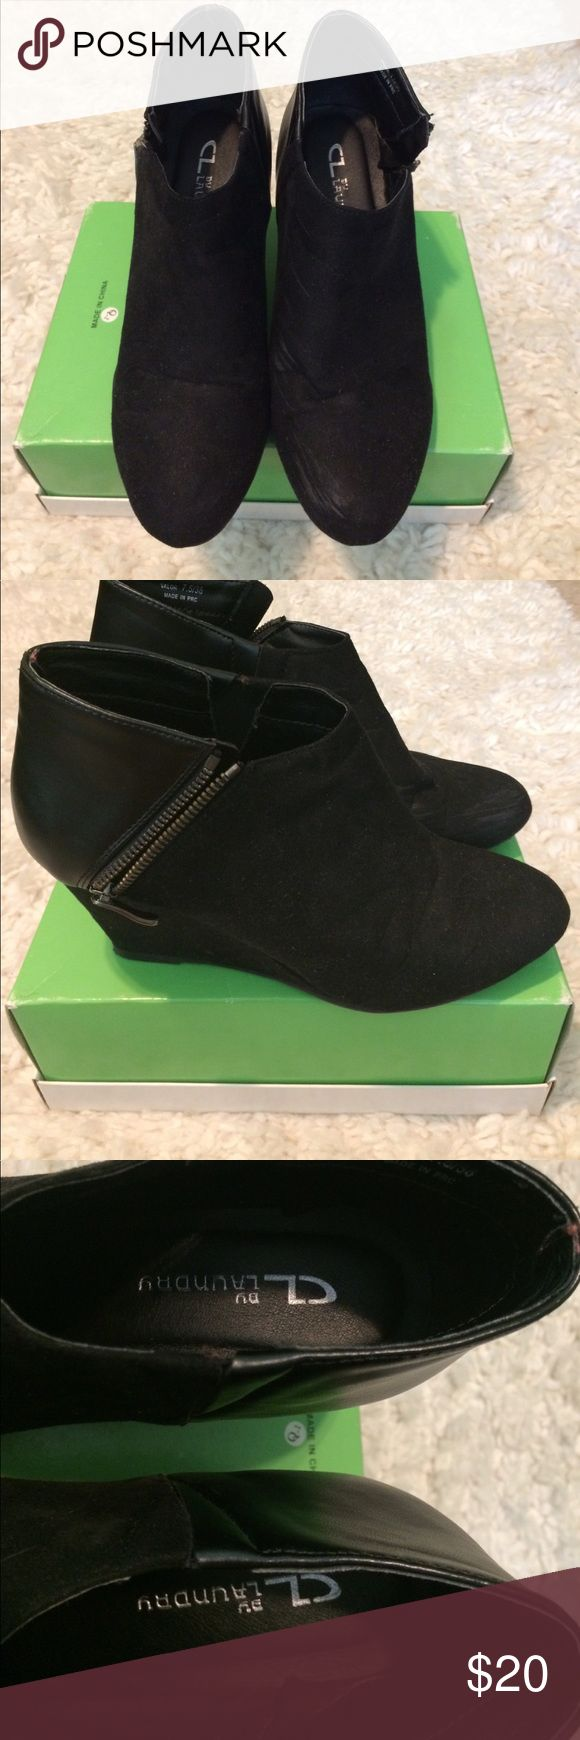 Chinese laundry wedge booties Size 7.5, worn 2 times but kept in good condition. Left shoe has scuffs/marks on the inner right side of it, and the bottom has some small signs of wear. There are no damages and the zippers on both sides work! About 2.5 inch heels. Chinese Laundry Shoes Ankle Boots & Booties